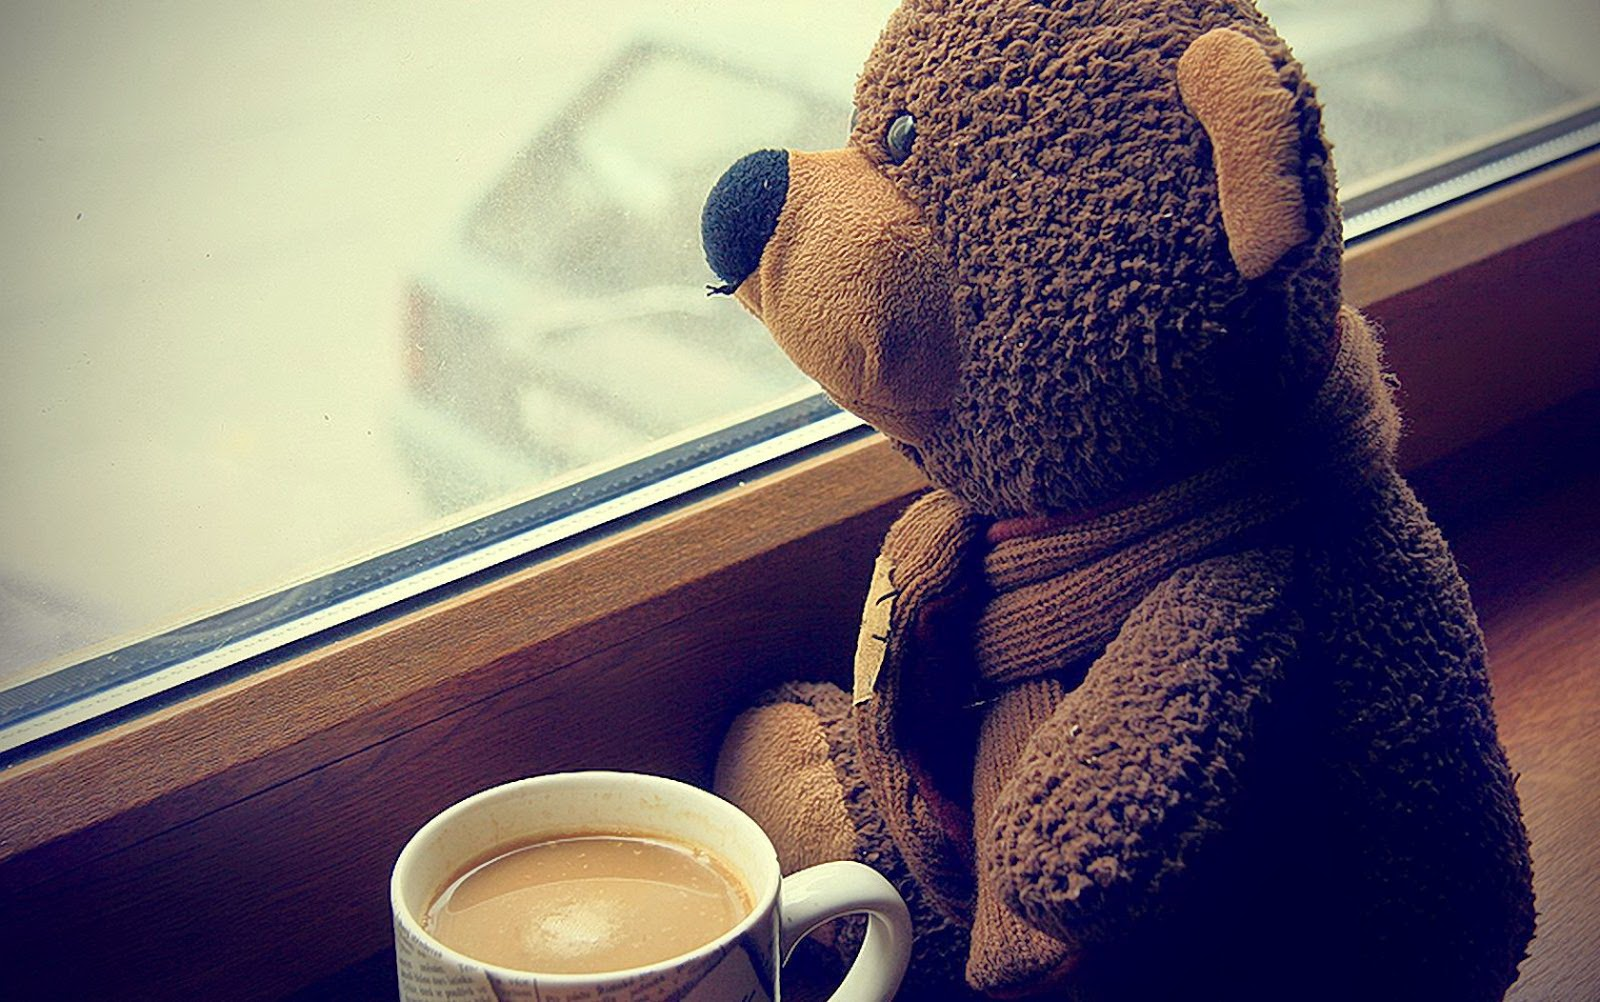 Lonely-Sad-Teddy-bear-image-for-social-sharing-picture.jpg